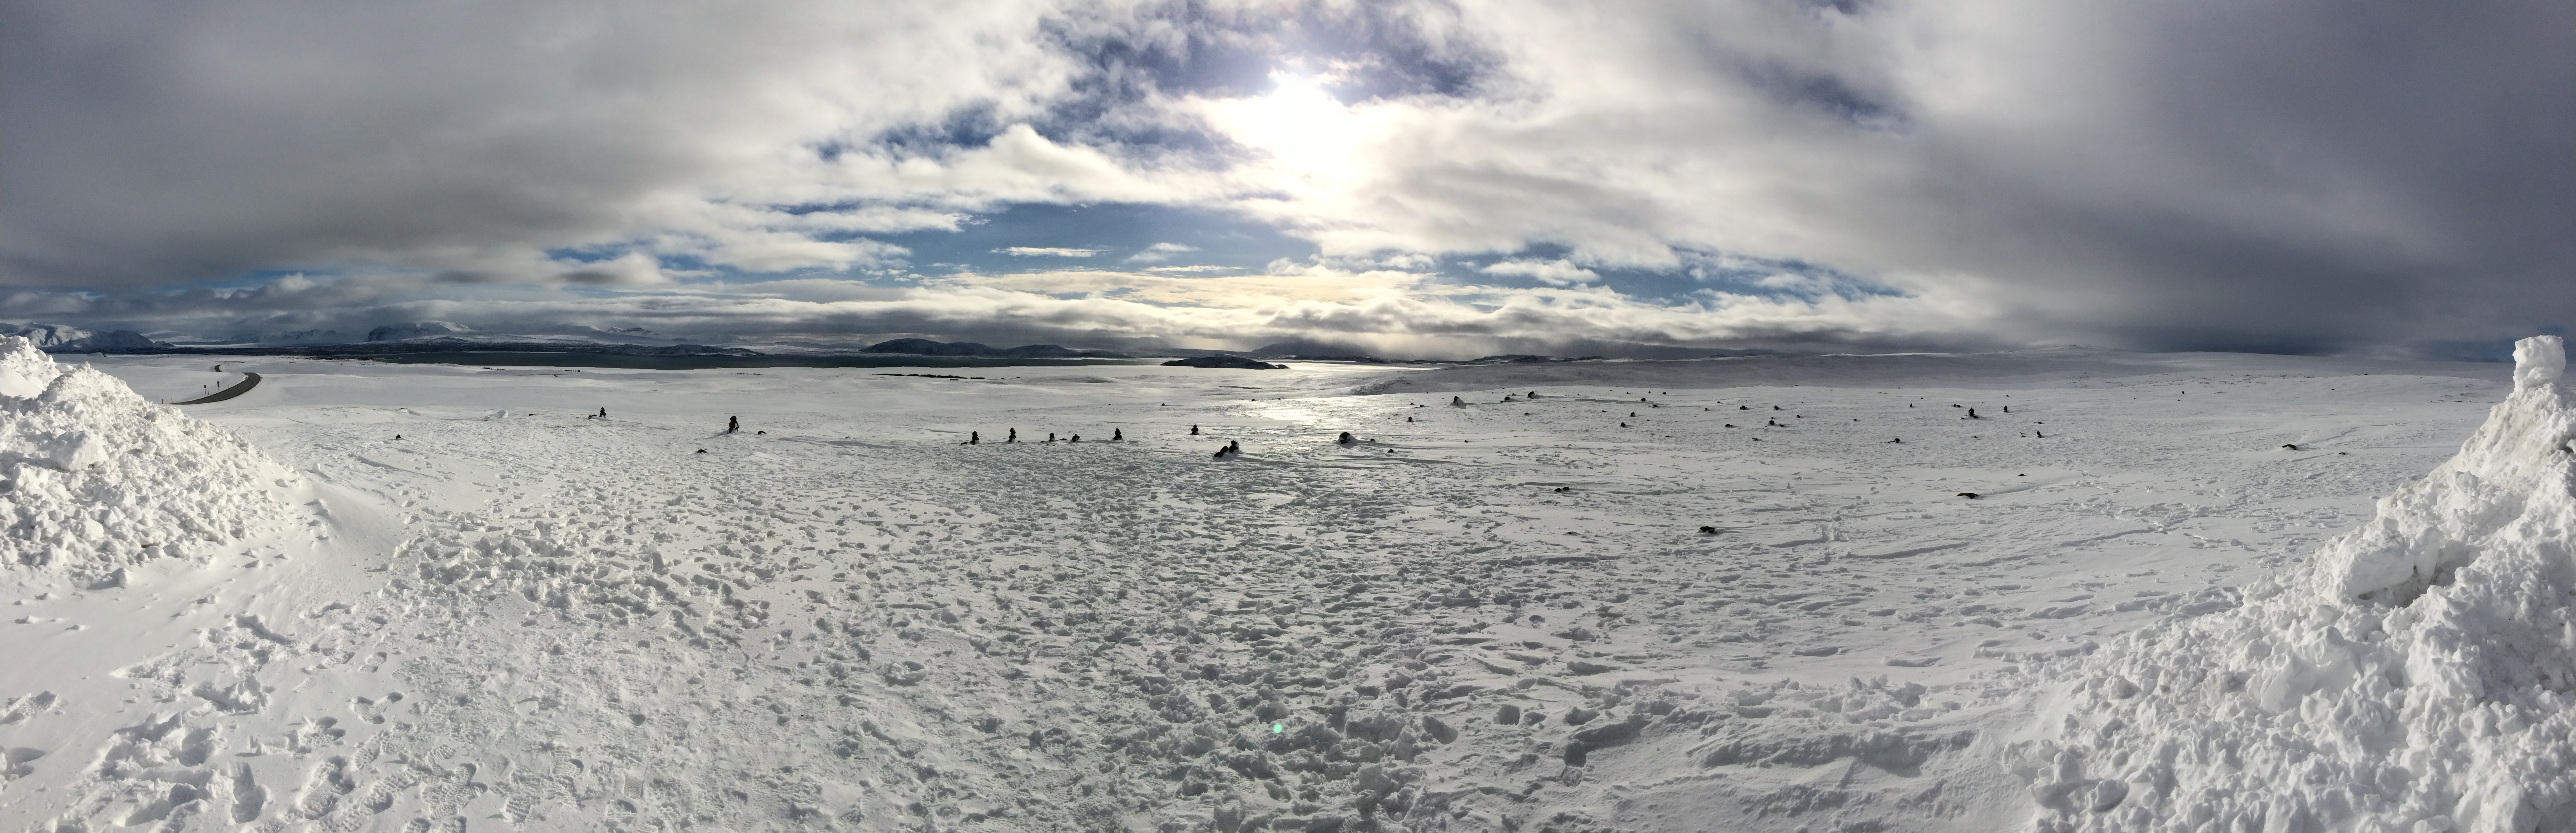 Panorama of the lake at Þingvellir